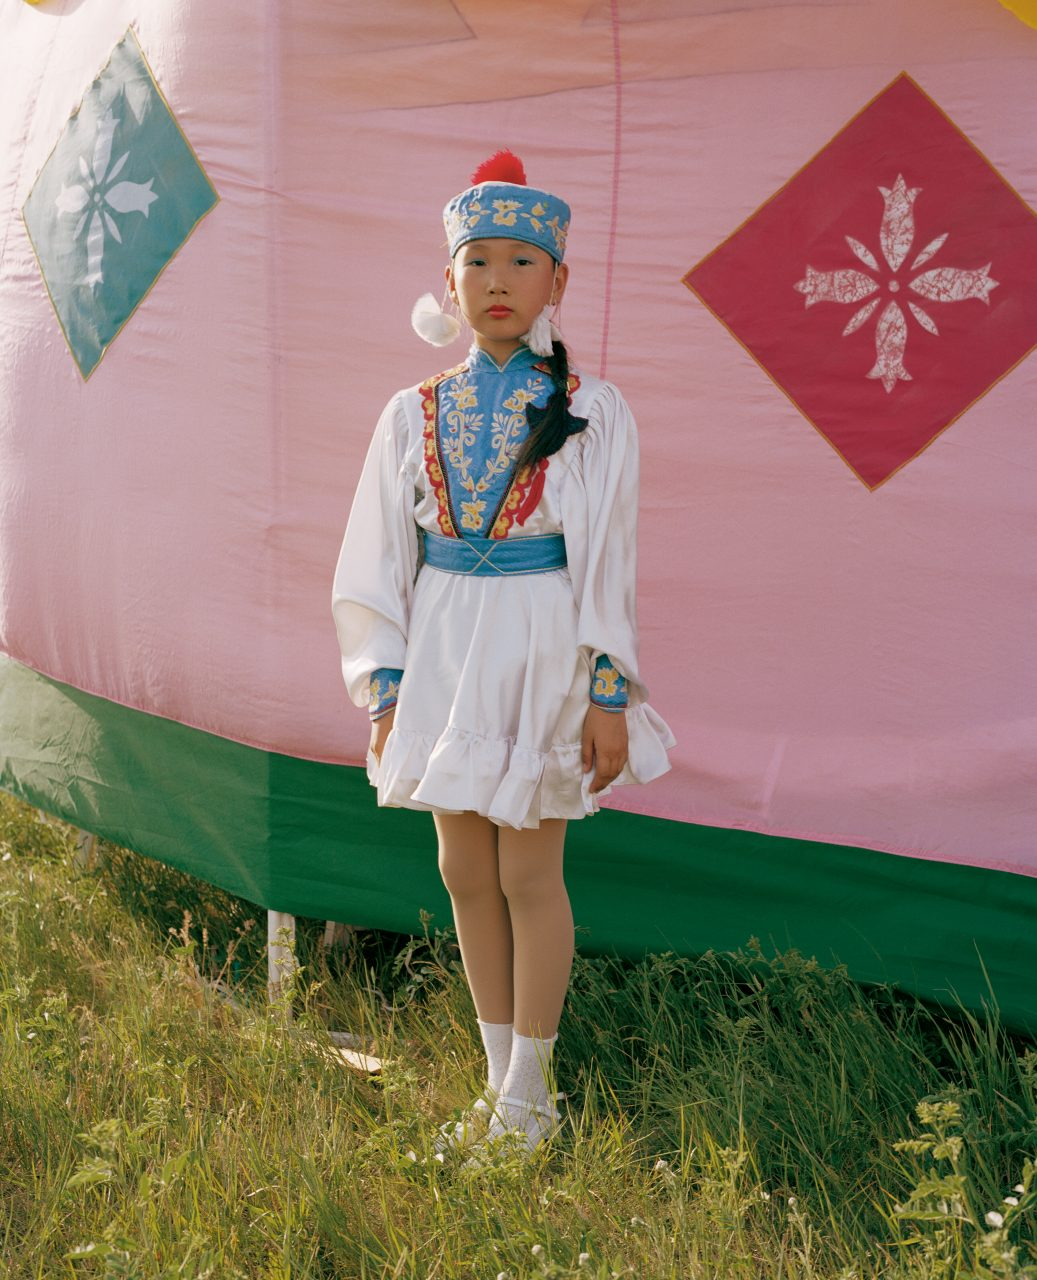 Russkie #99, c-print on dibond,100 x 80 cm, 2007